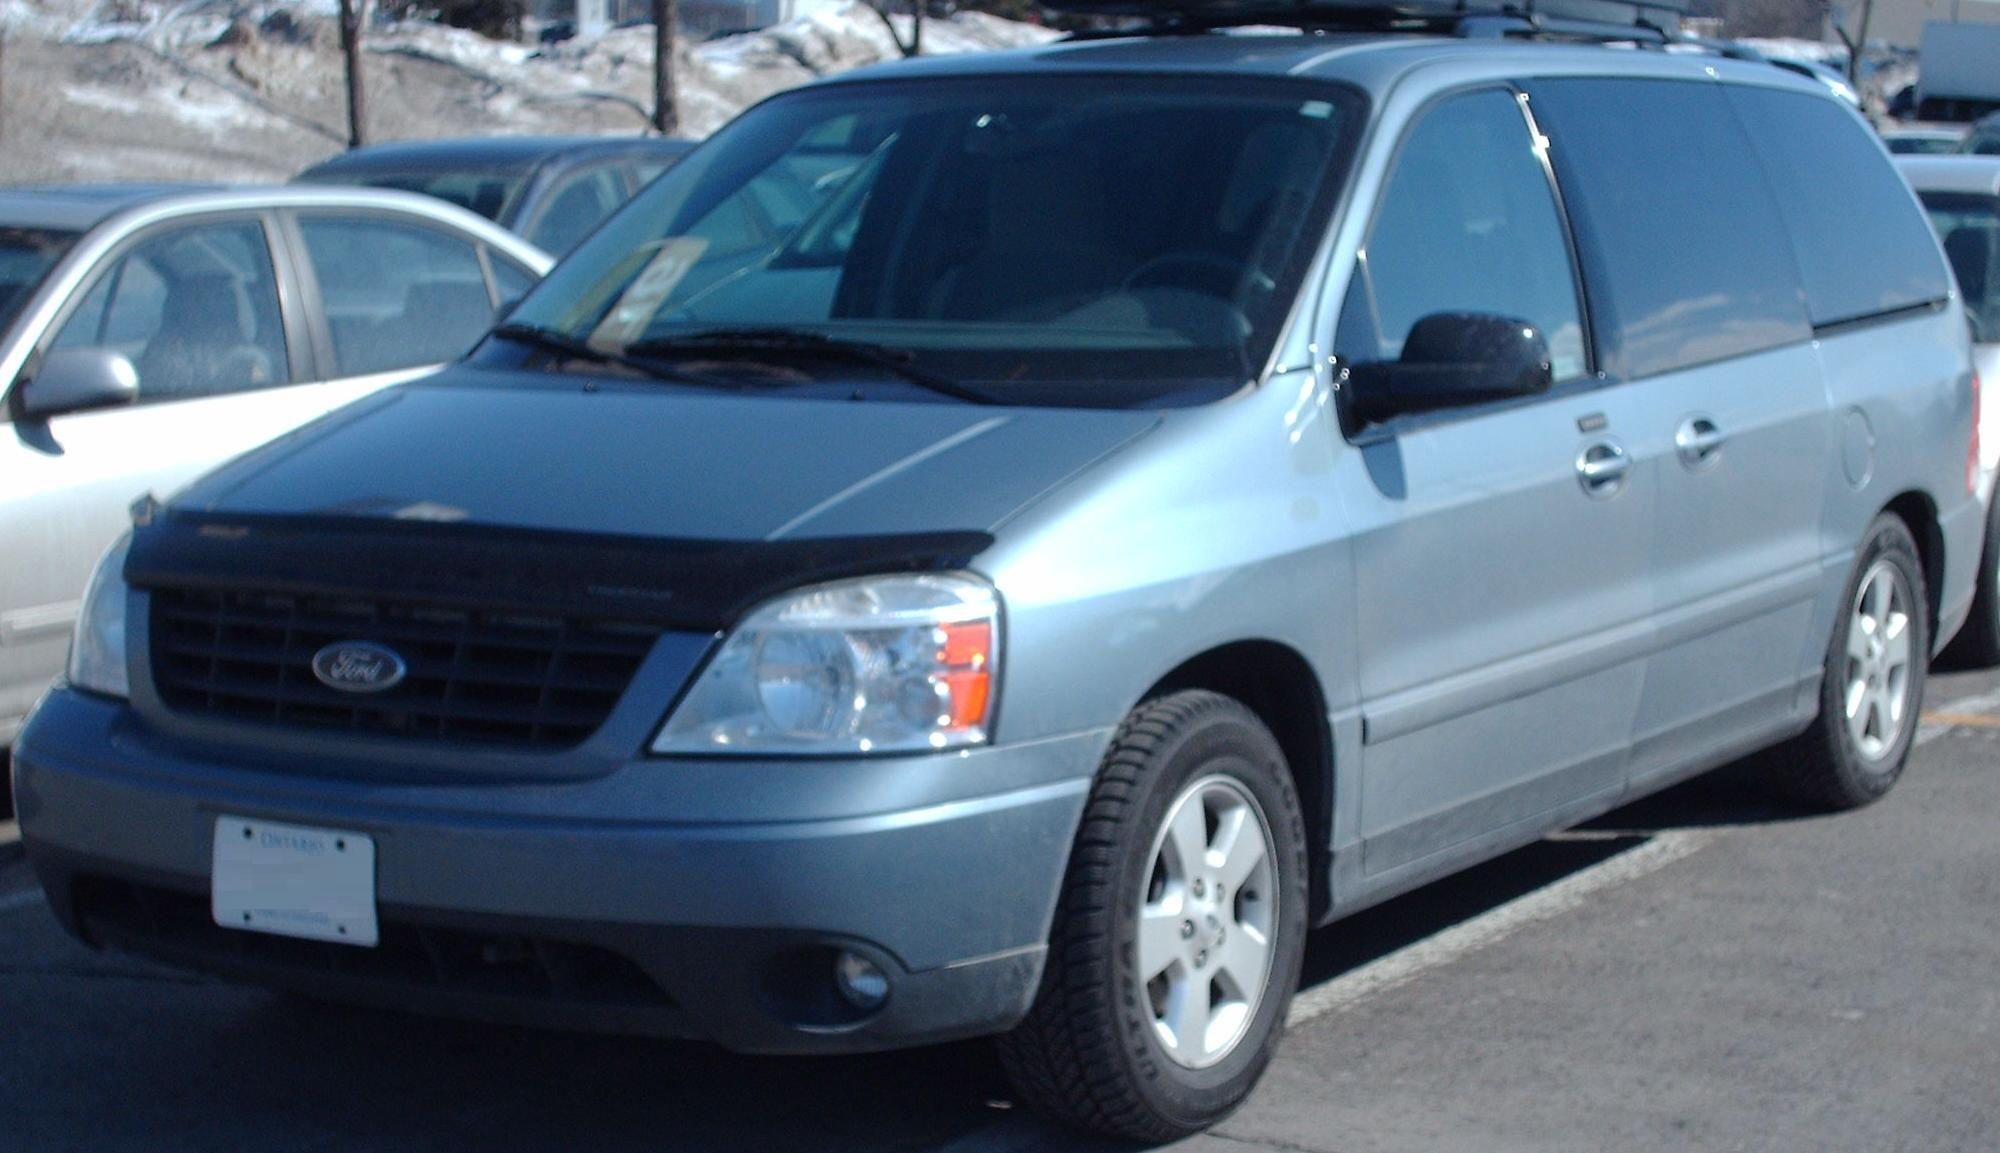 Ford Freestar #8